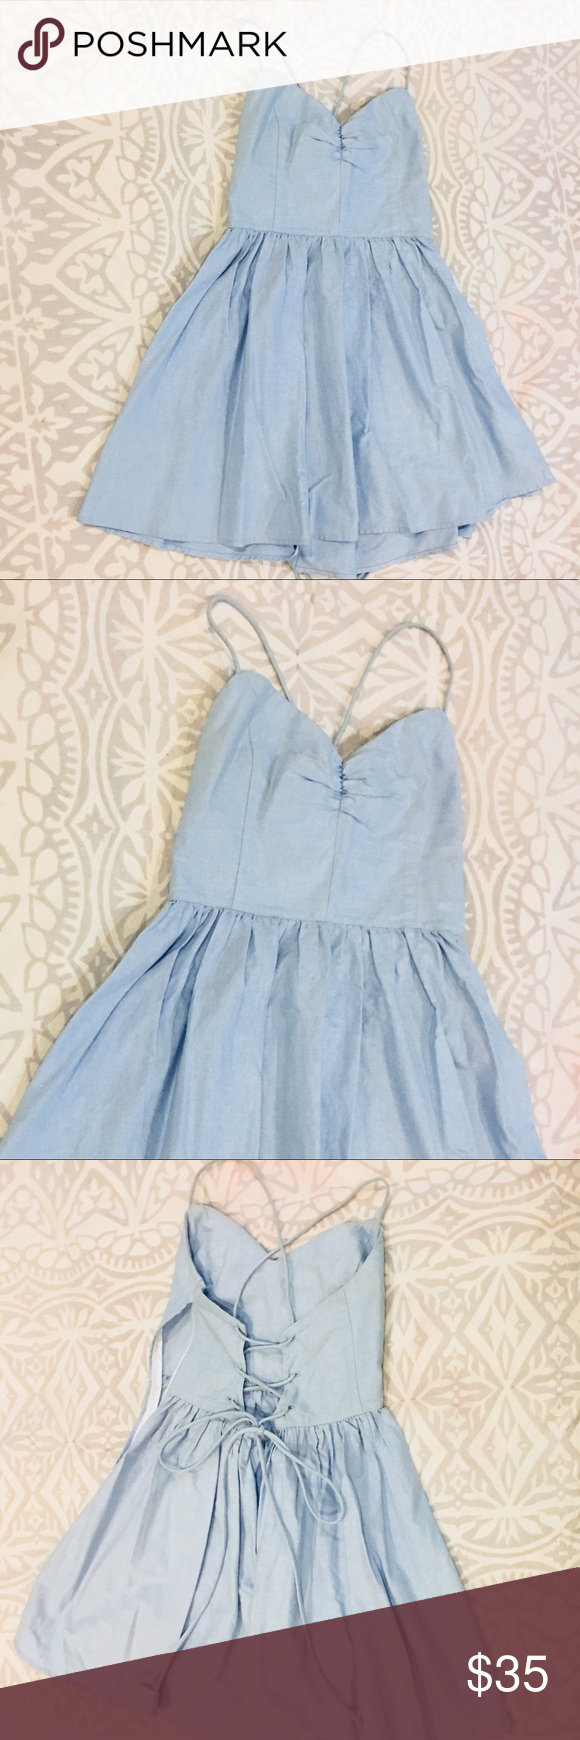 American Apparel Baby Blue Party Dress   Blue party dress, Blue ...